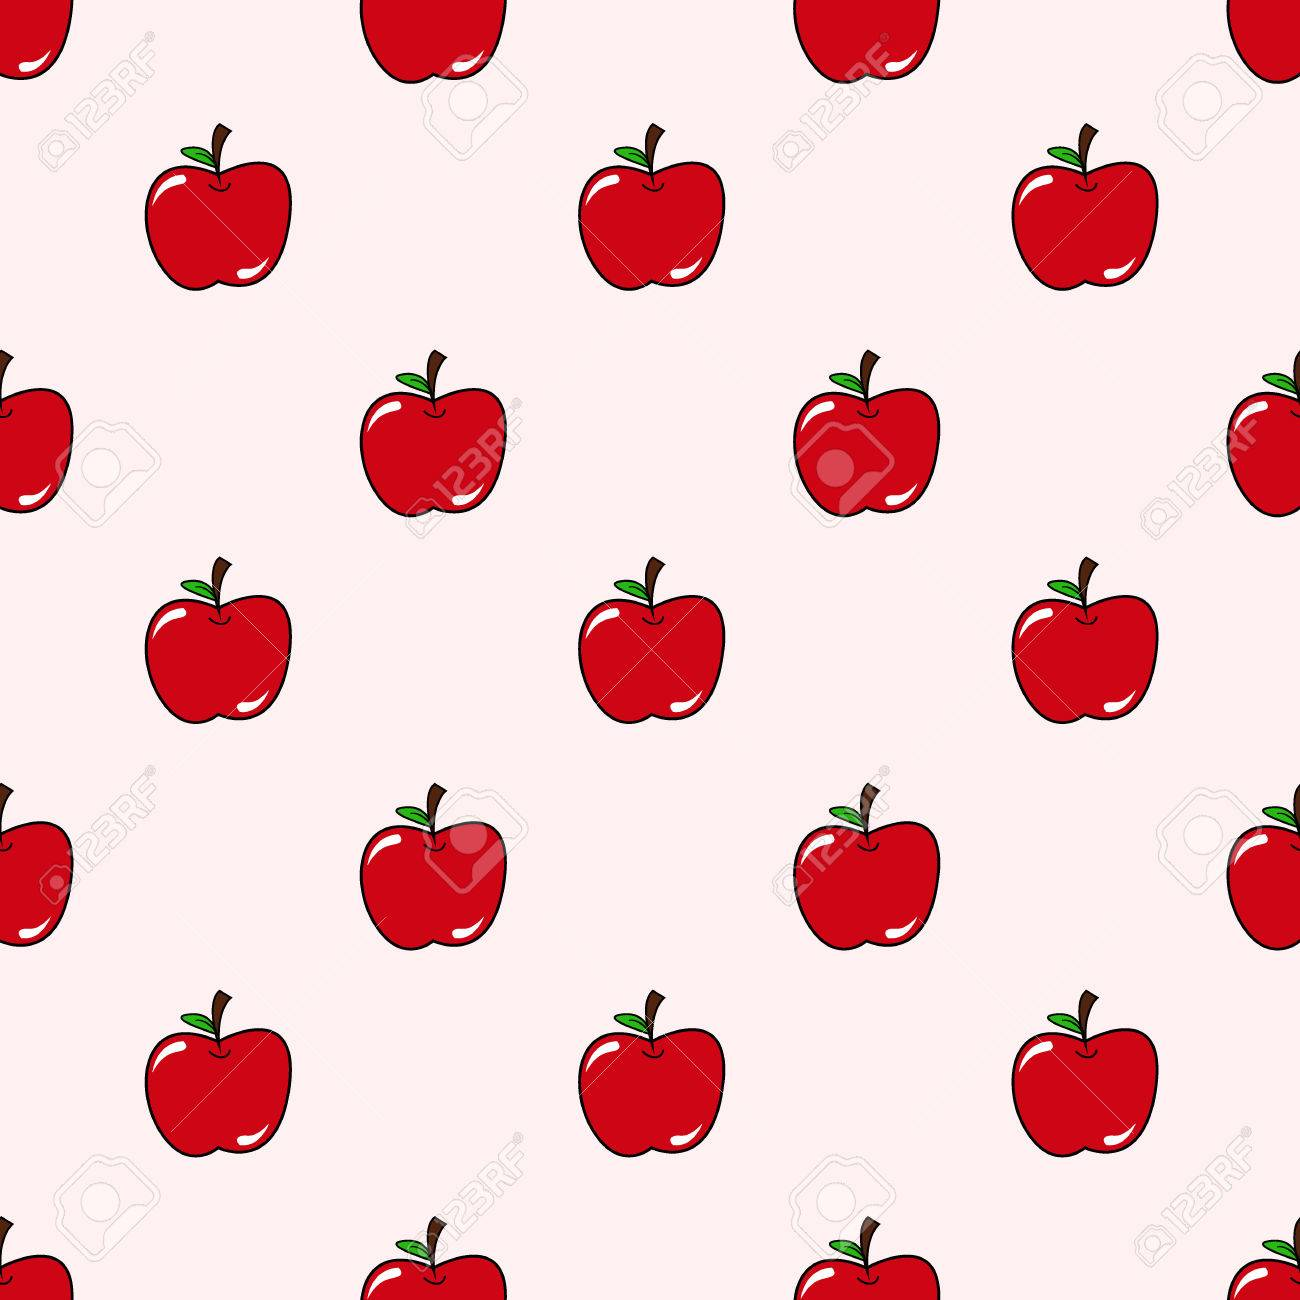 seamless cute apple pattern background royalty free cliparts